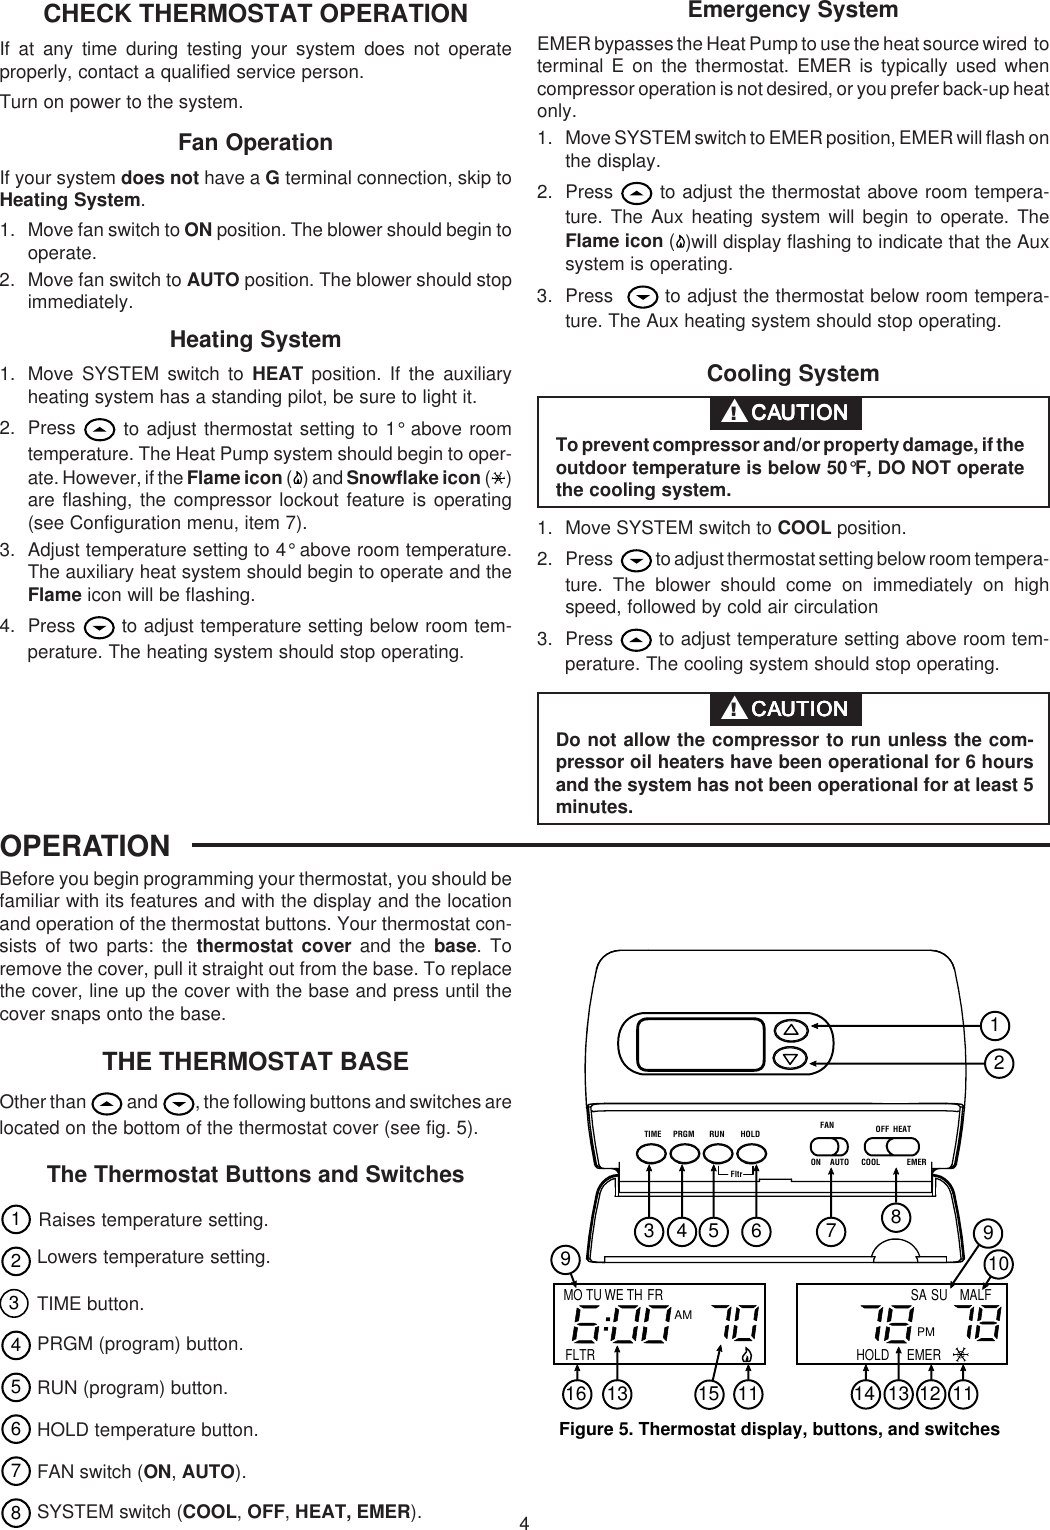 White Rodgers Thermostat Malf Manual Wiring 1f80 51 Comfortable Diagram Manuals Pictures Rh Arsavar Com 1530